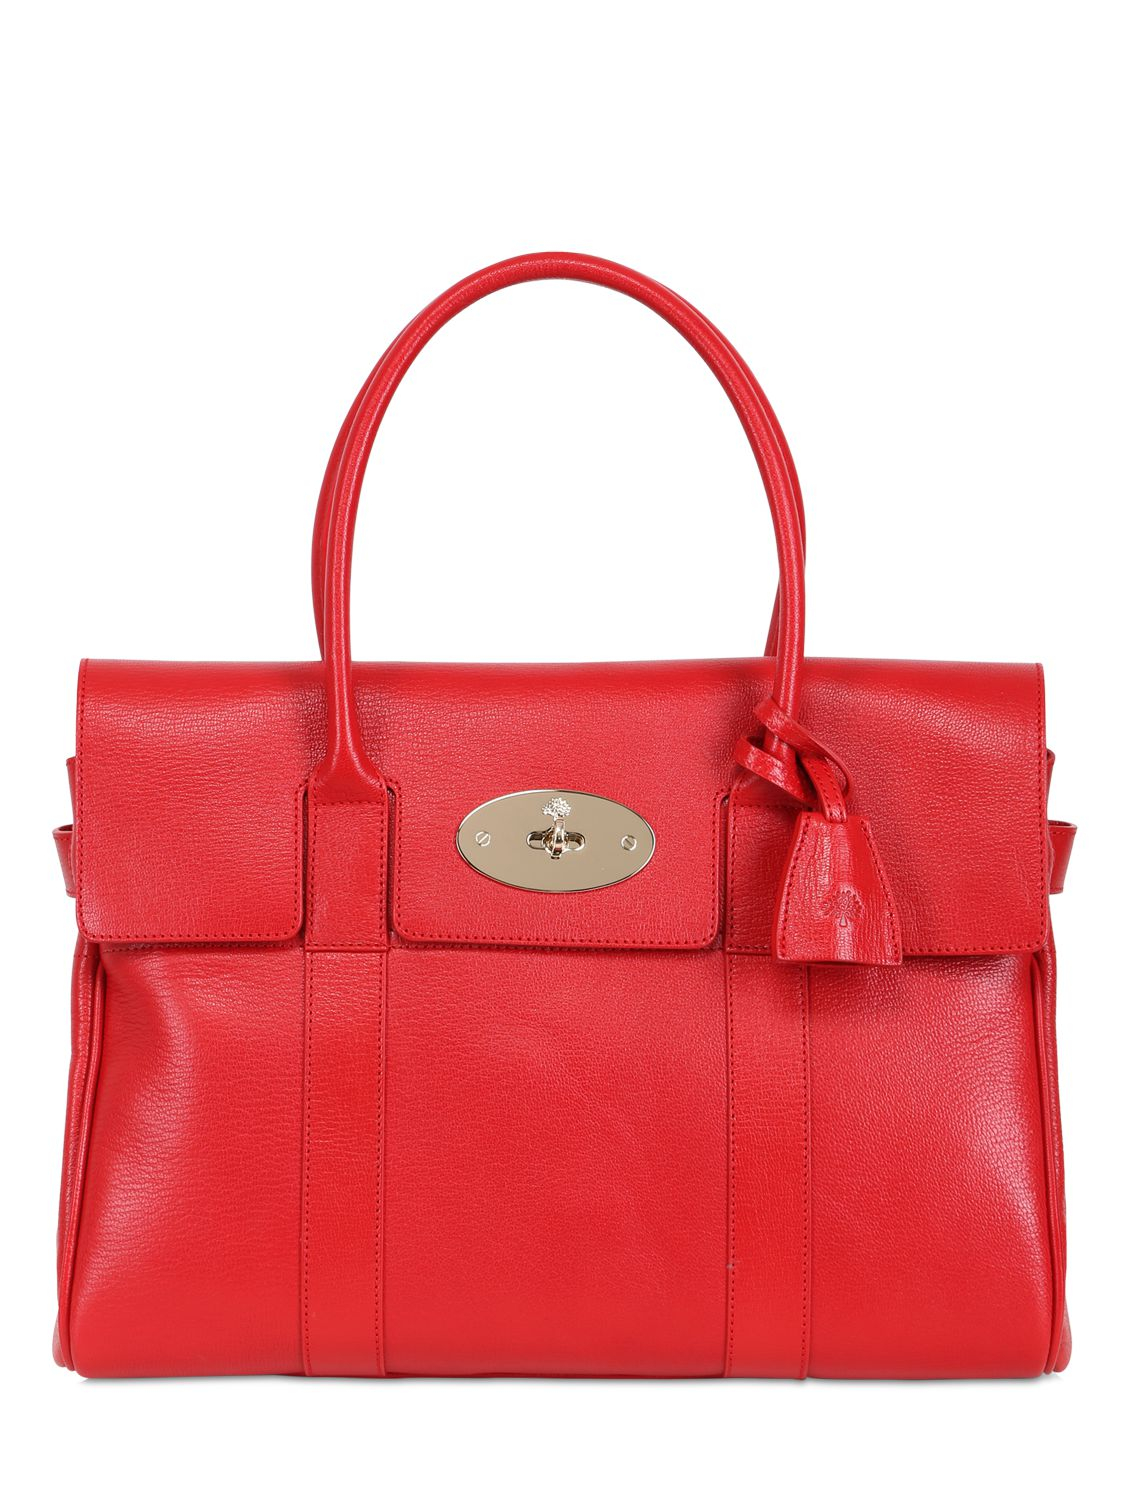 Mulberry Bayswater Leather Bag In Red Lyst